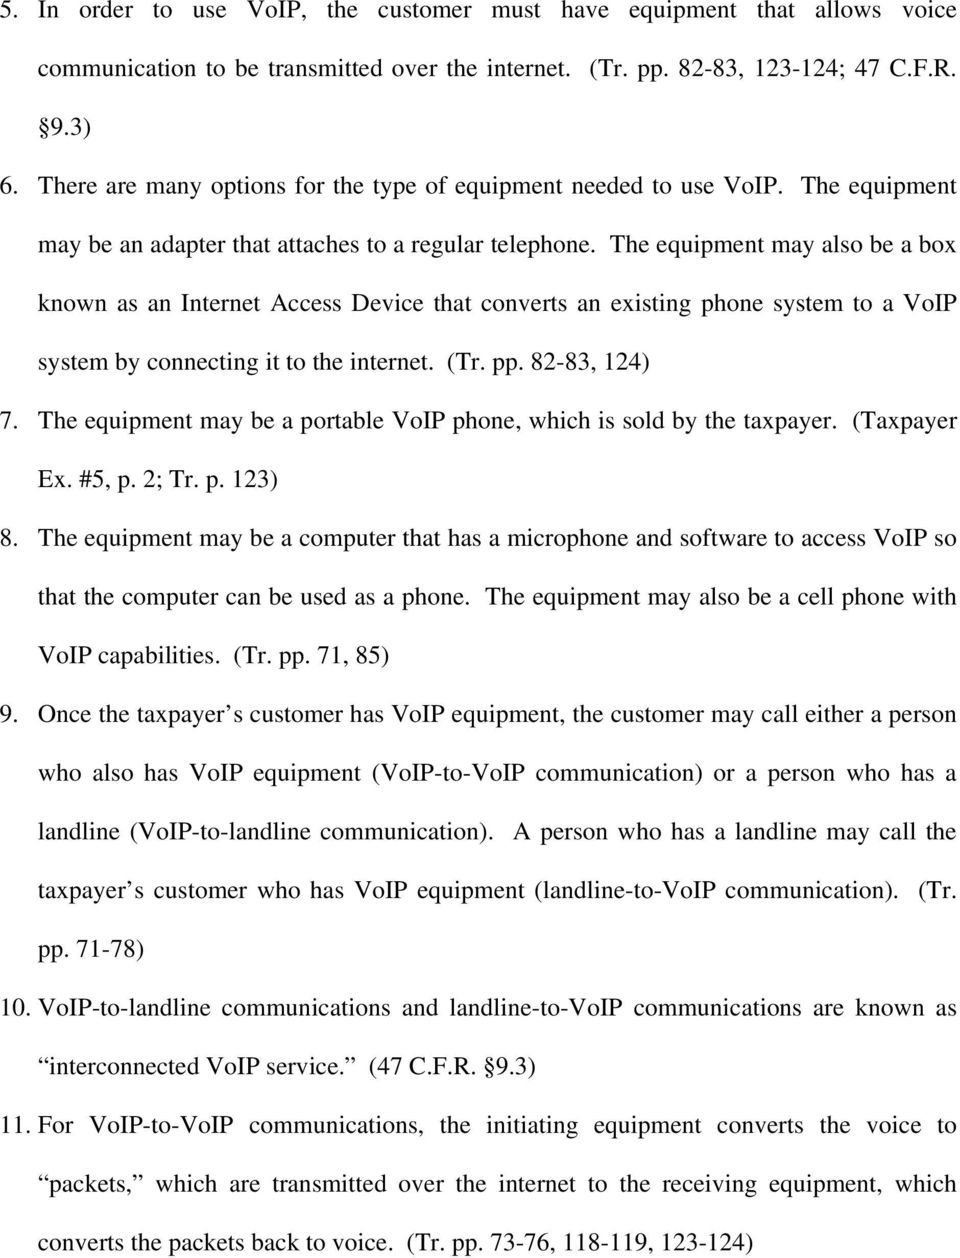 The equipment may also be a box known as an Internet Access Device that converts an existing phone system to a VoIP system by connecting it to the internet. (Tr. pp. 82-83, 124) 7.